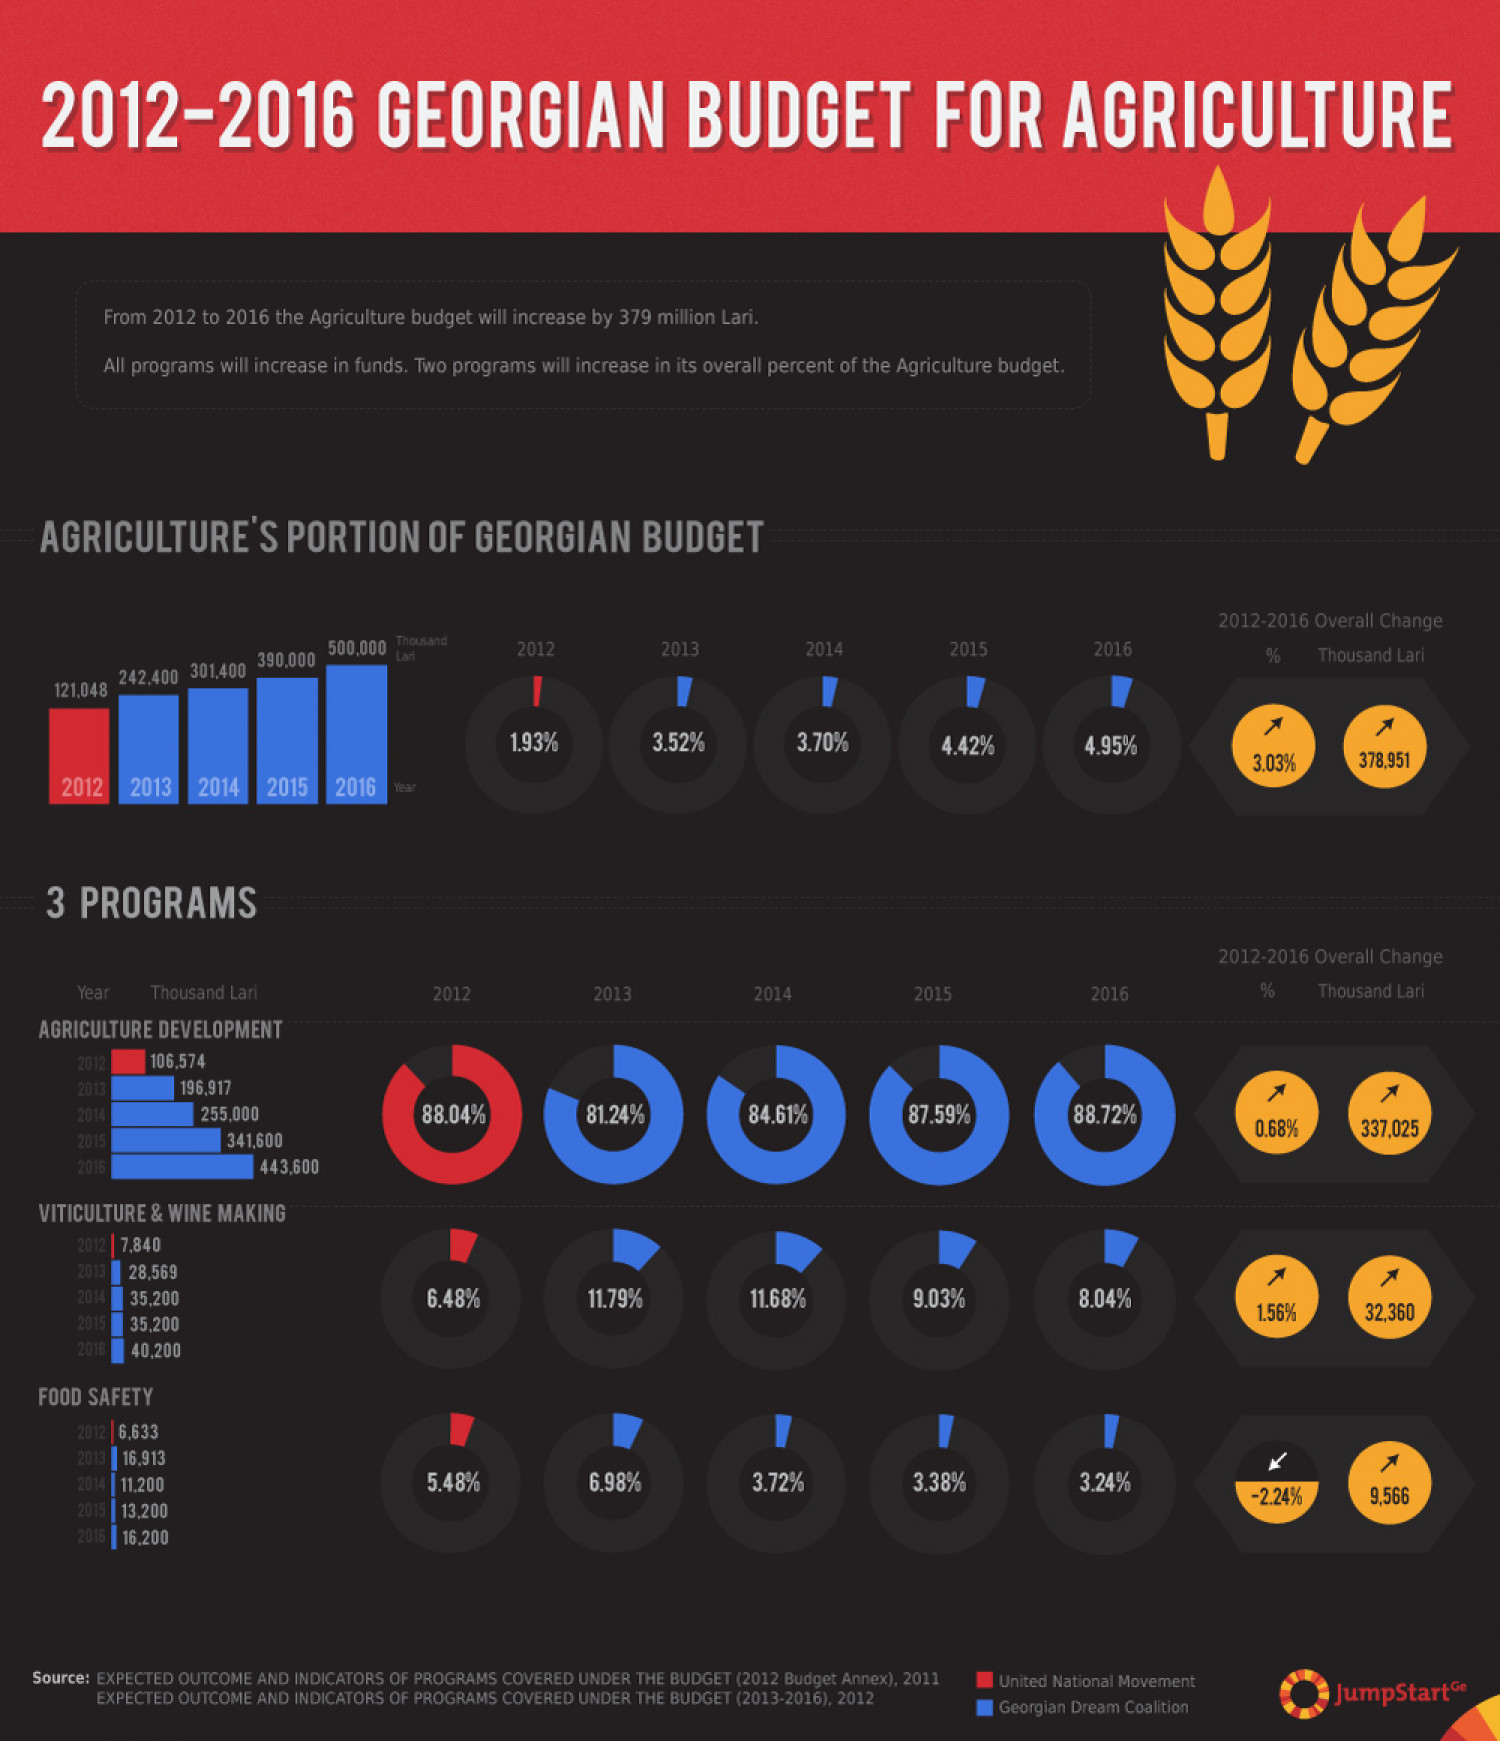 2012-2016 Georgian Budget for Agriculture Infographic